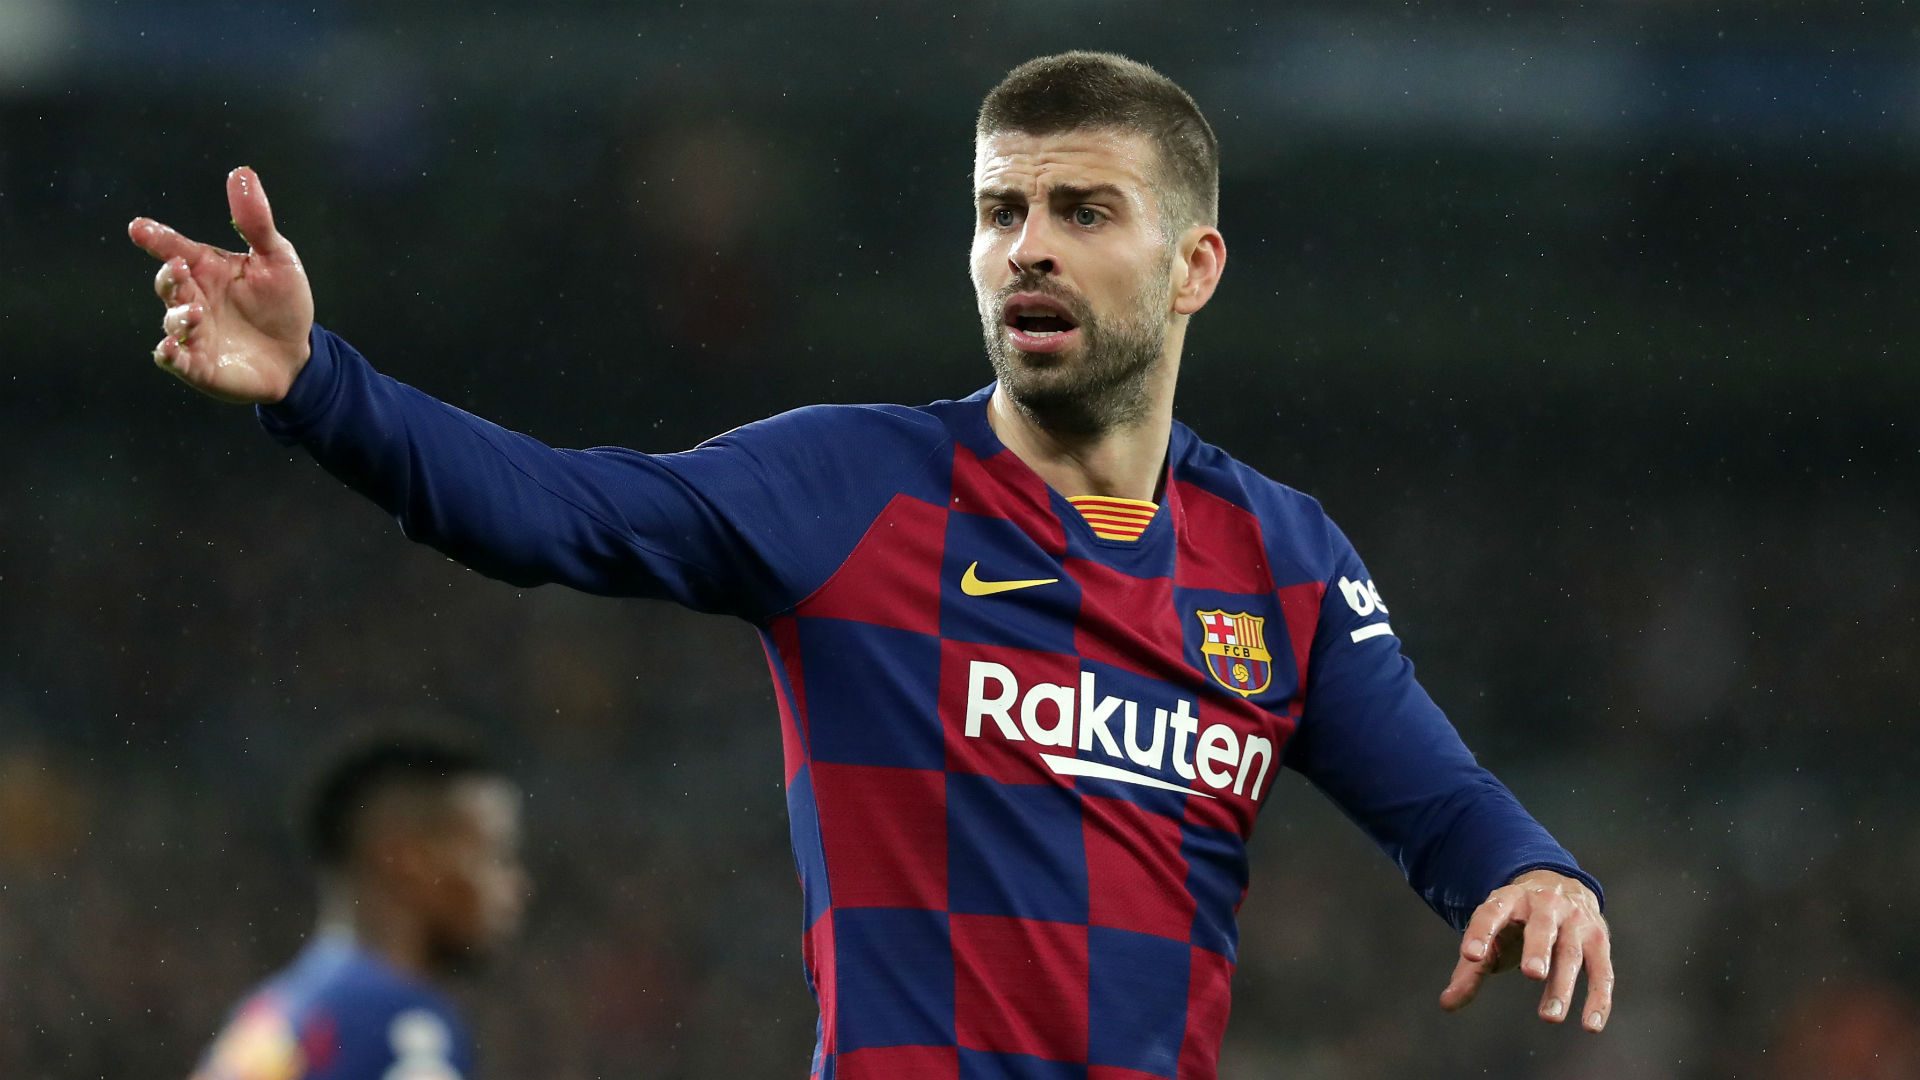 Pique defends Sarabia: Barcelona players like intensity in the dugout